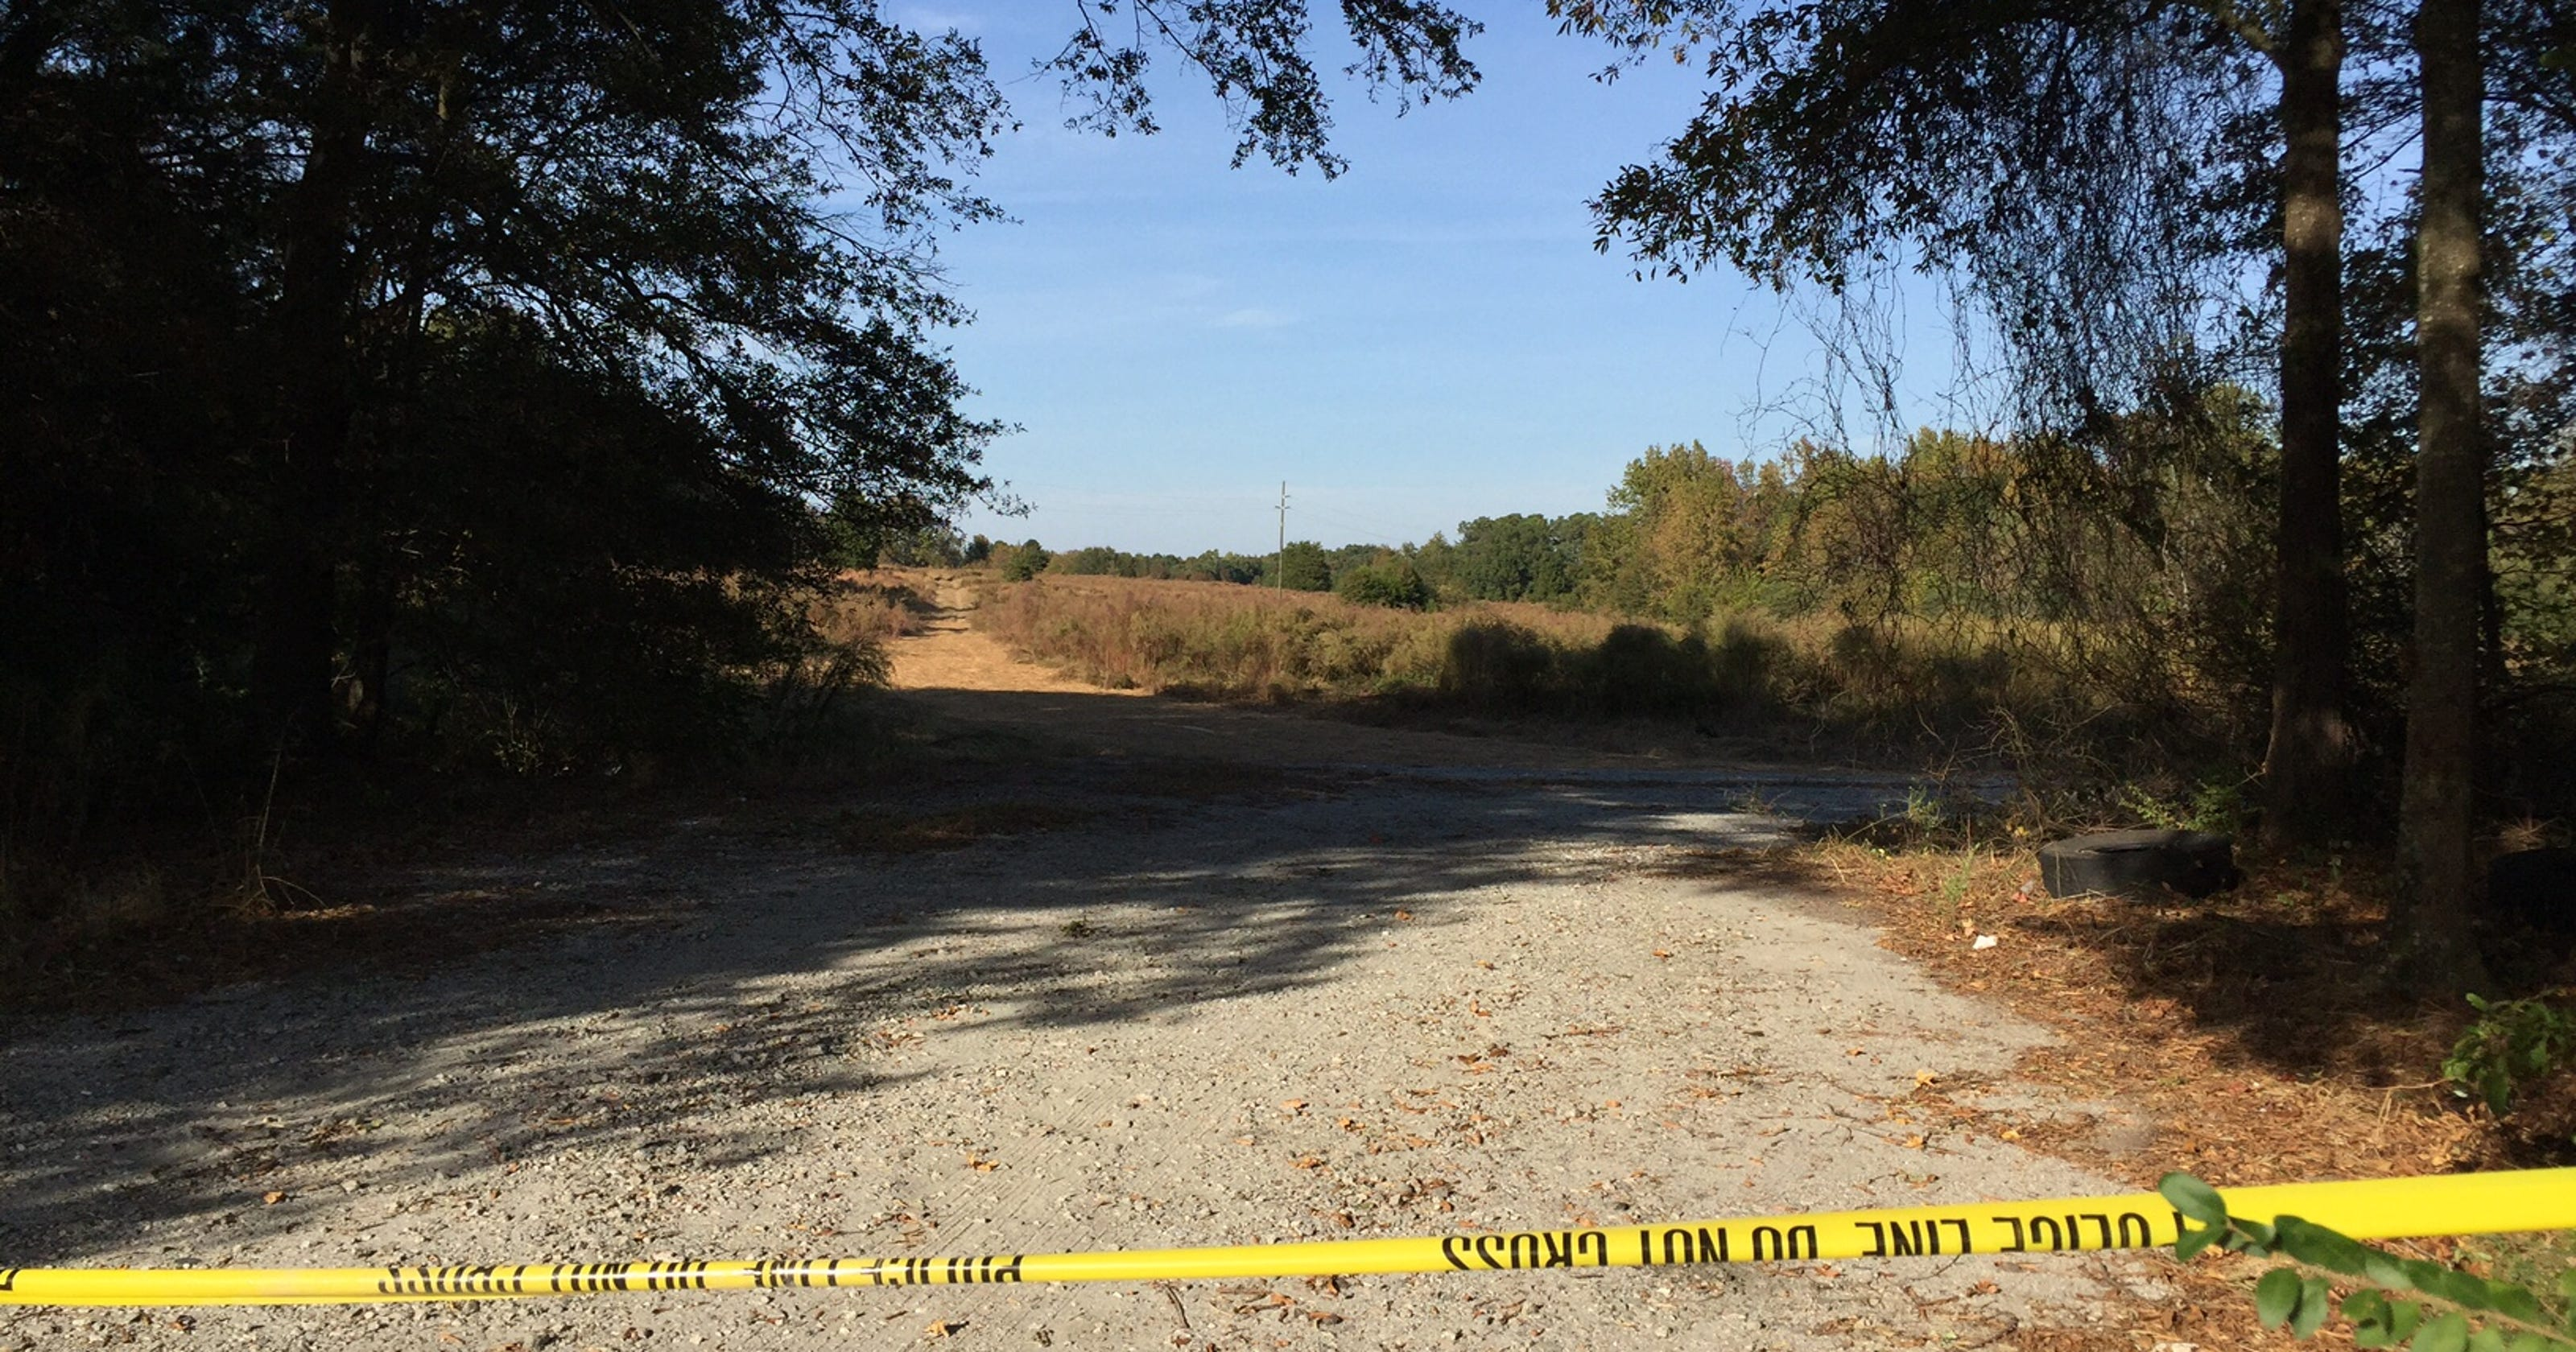 Body of 22-year-old woman found in abandoned house